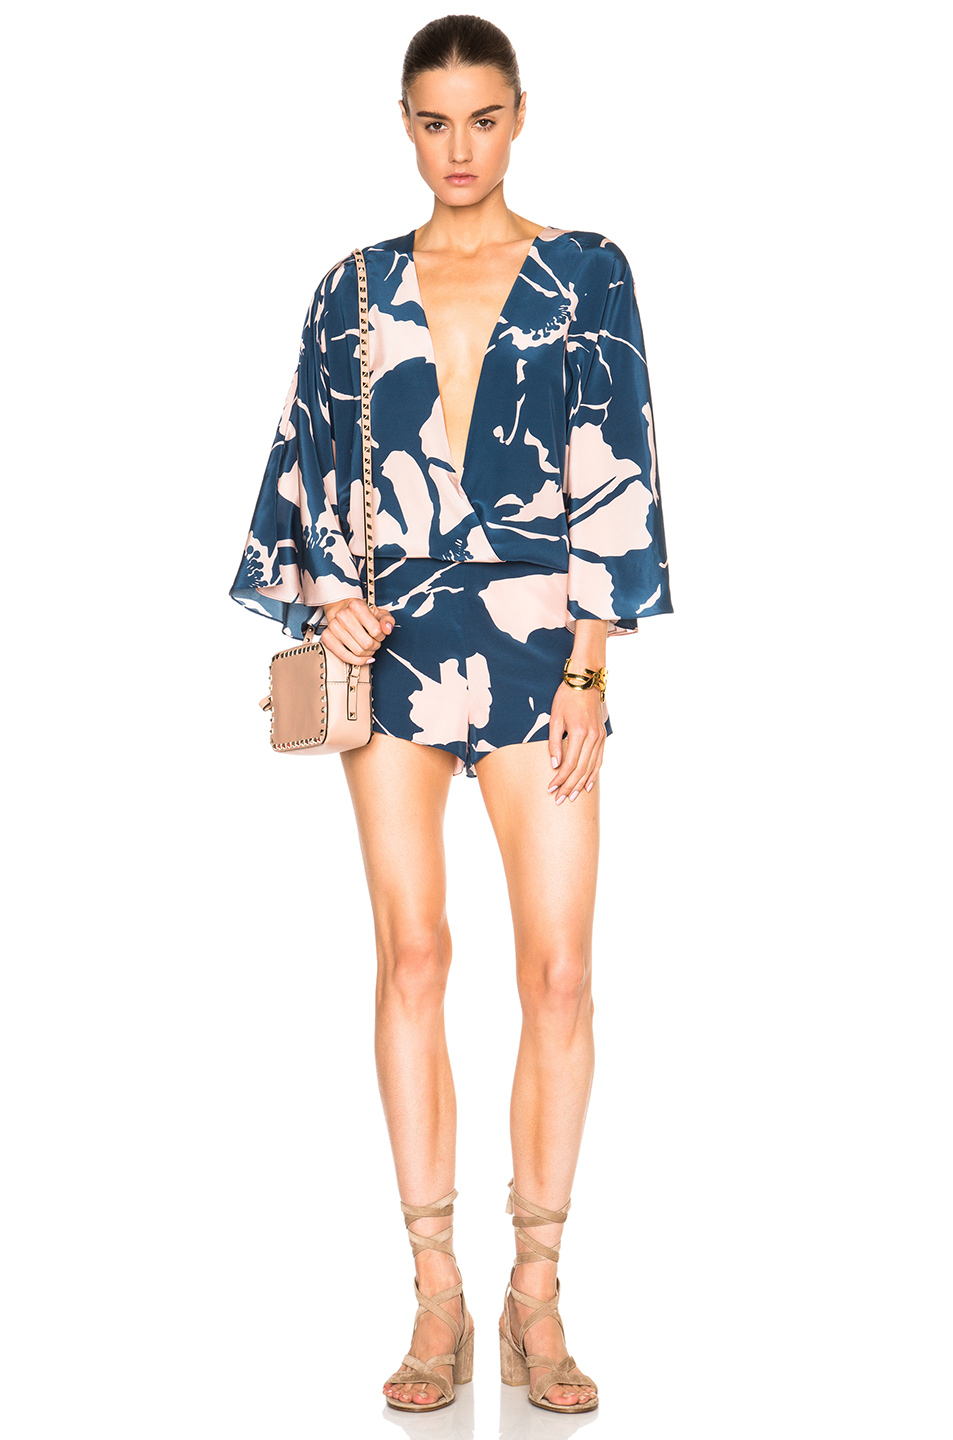 ADRIANA DEGREAS Crepe de Chine Playsuit in Blue,Floral